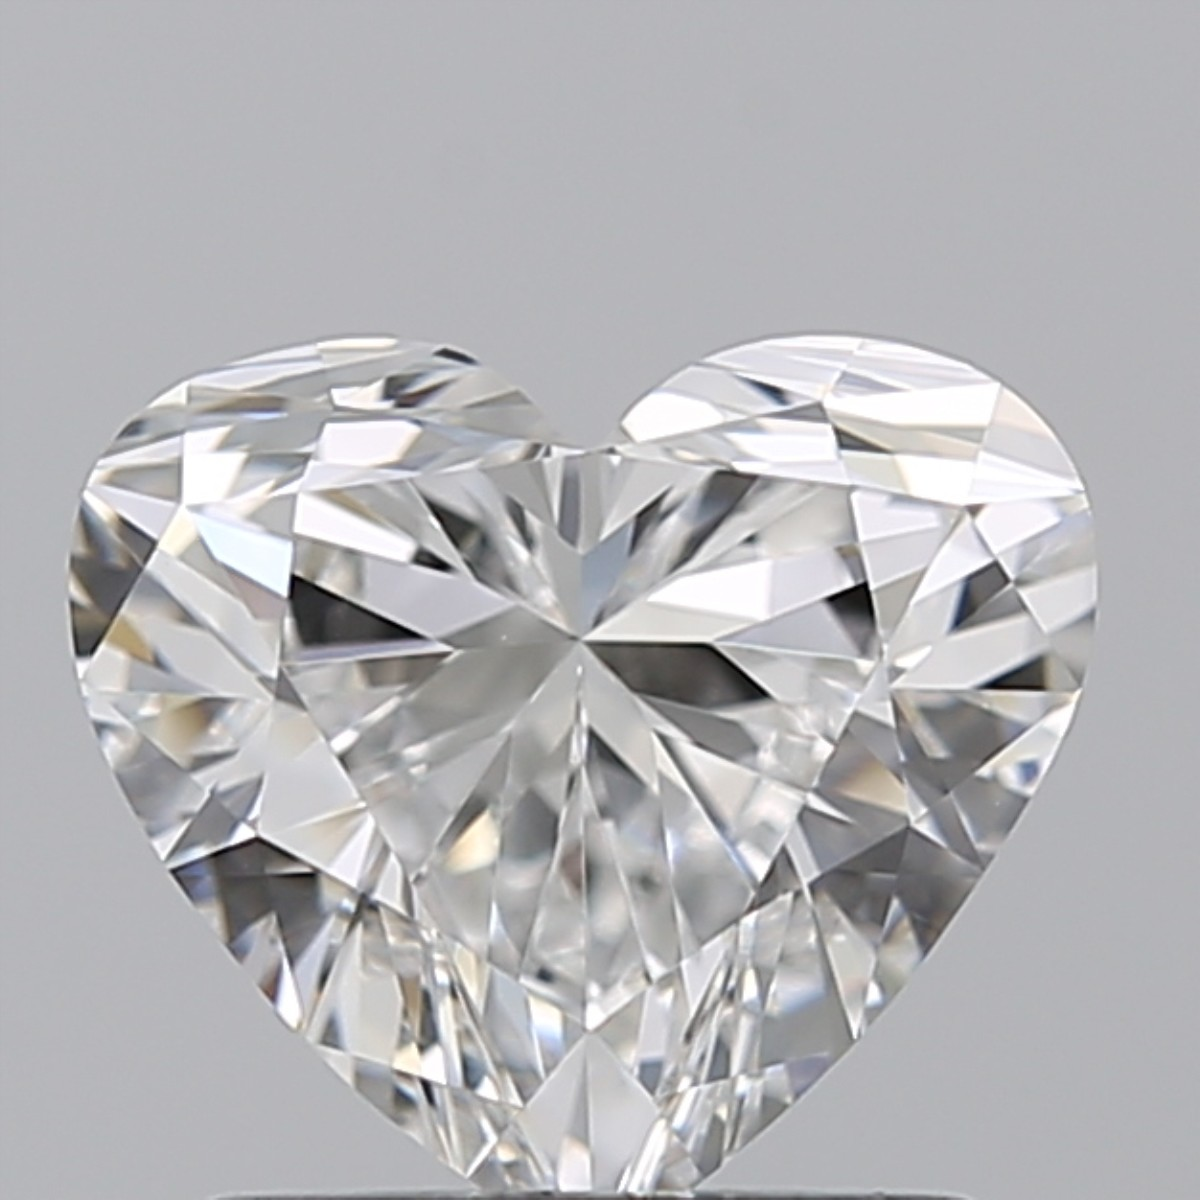 1.01 Carat Heart Diamond (E/IF)